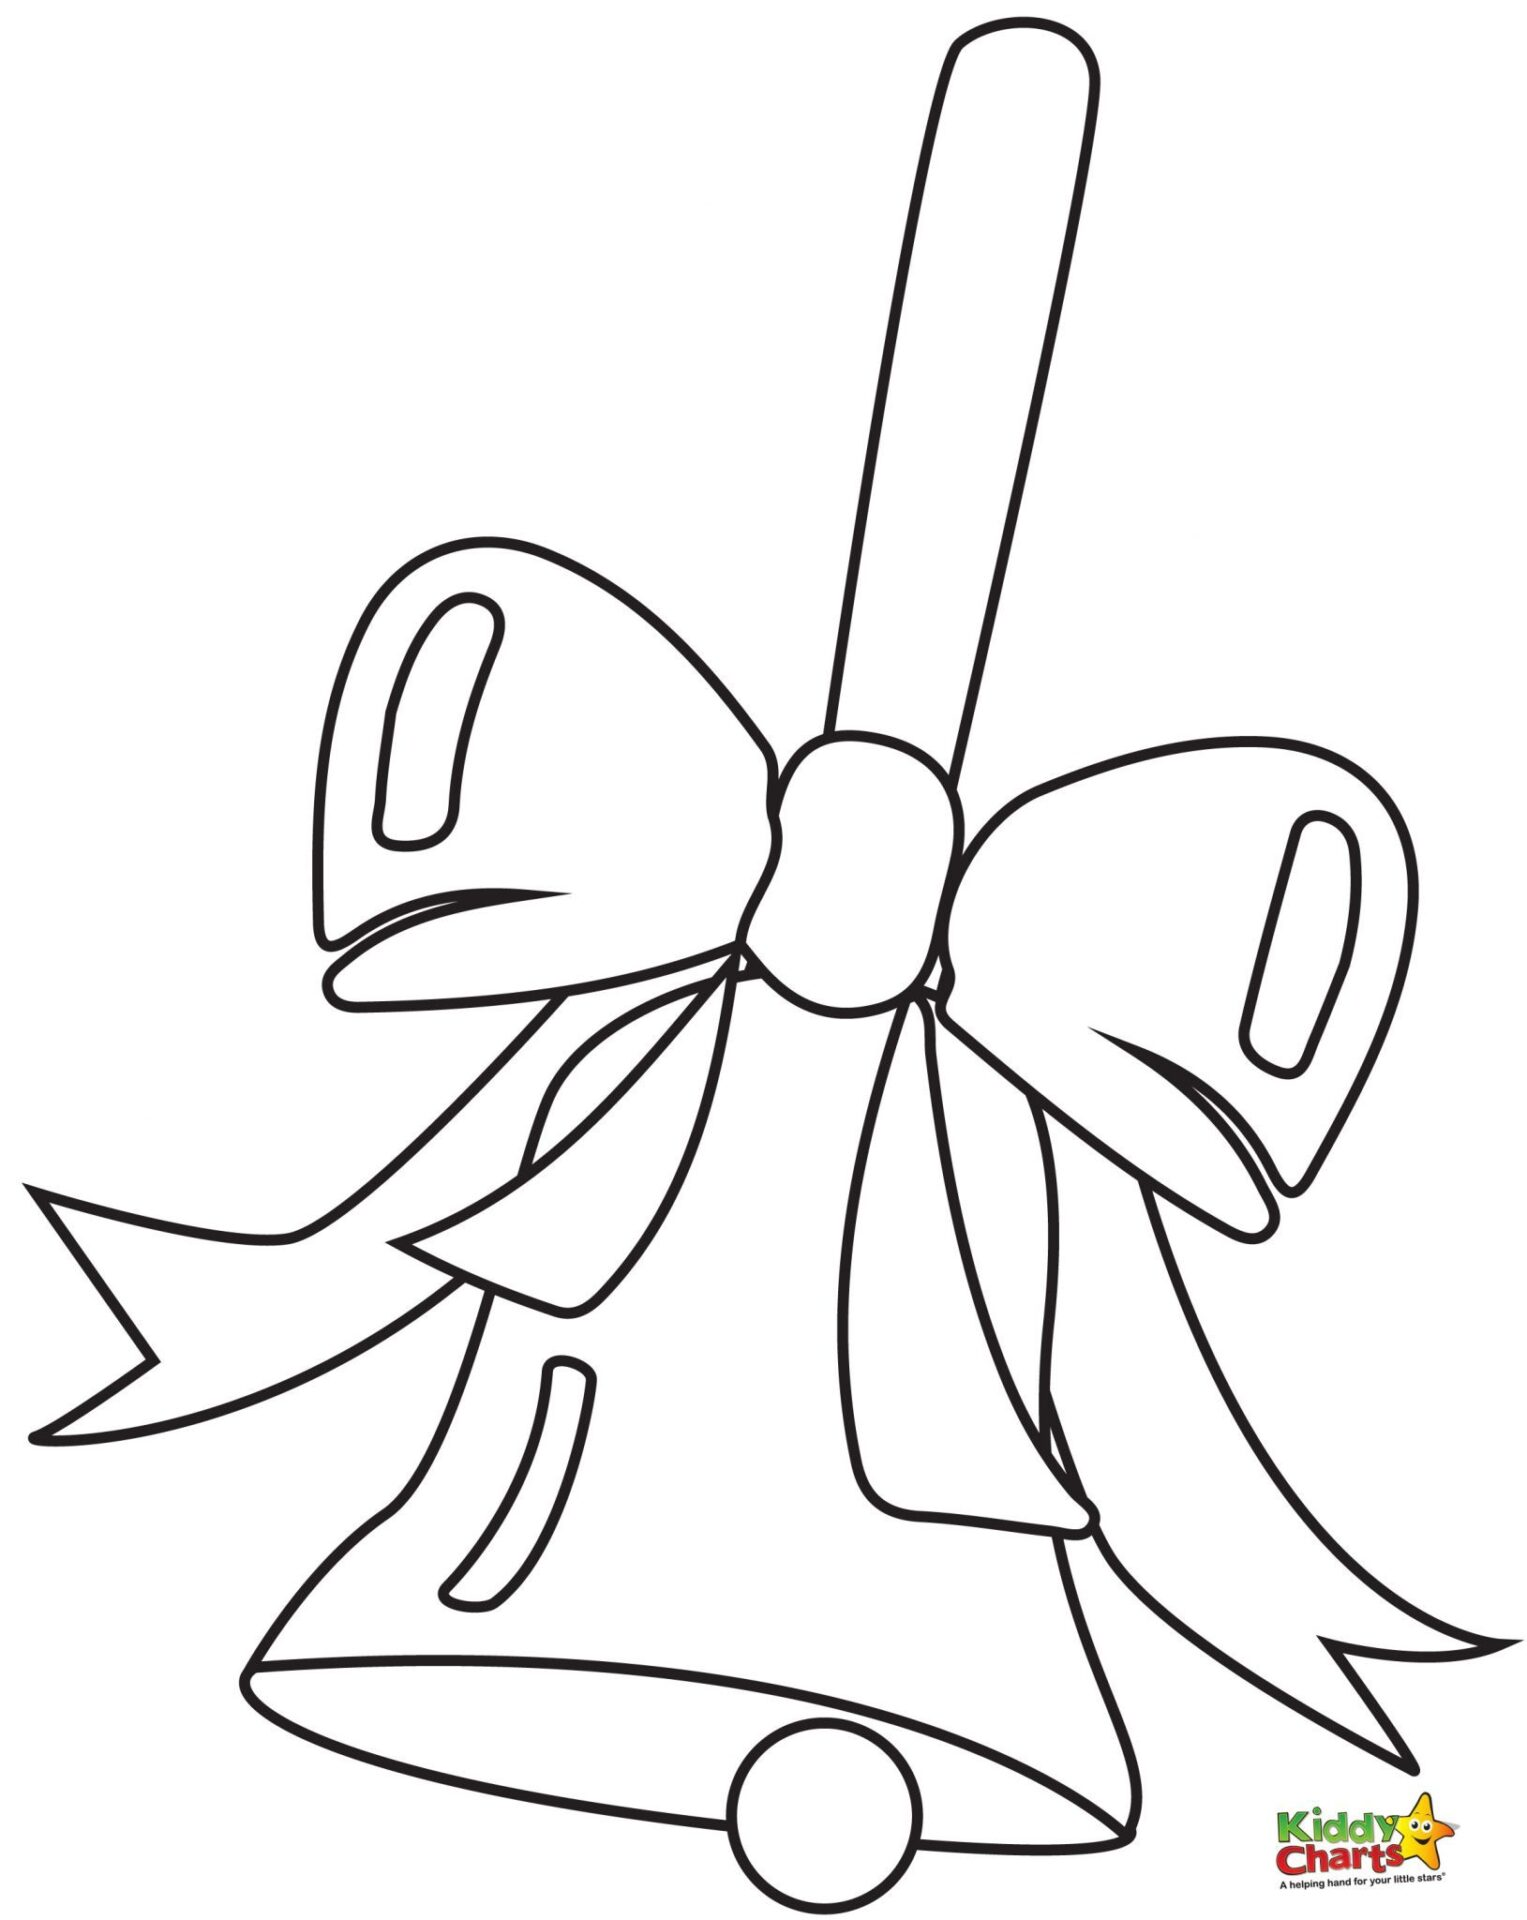 Bell with a Bow Printable Christmas Coloring Pages